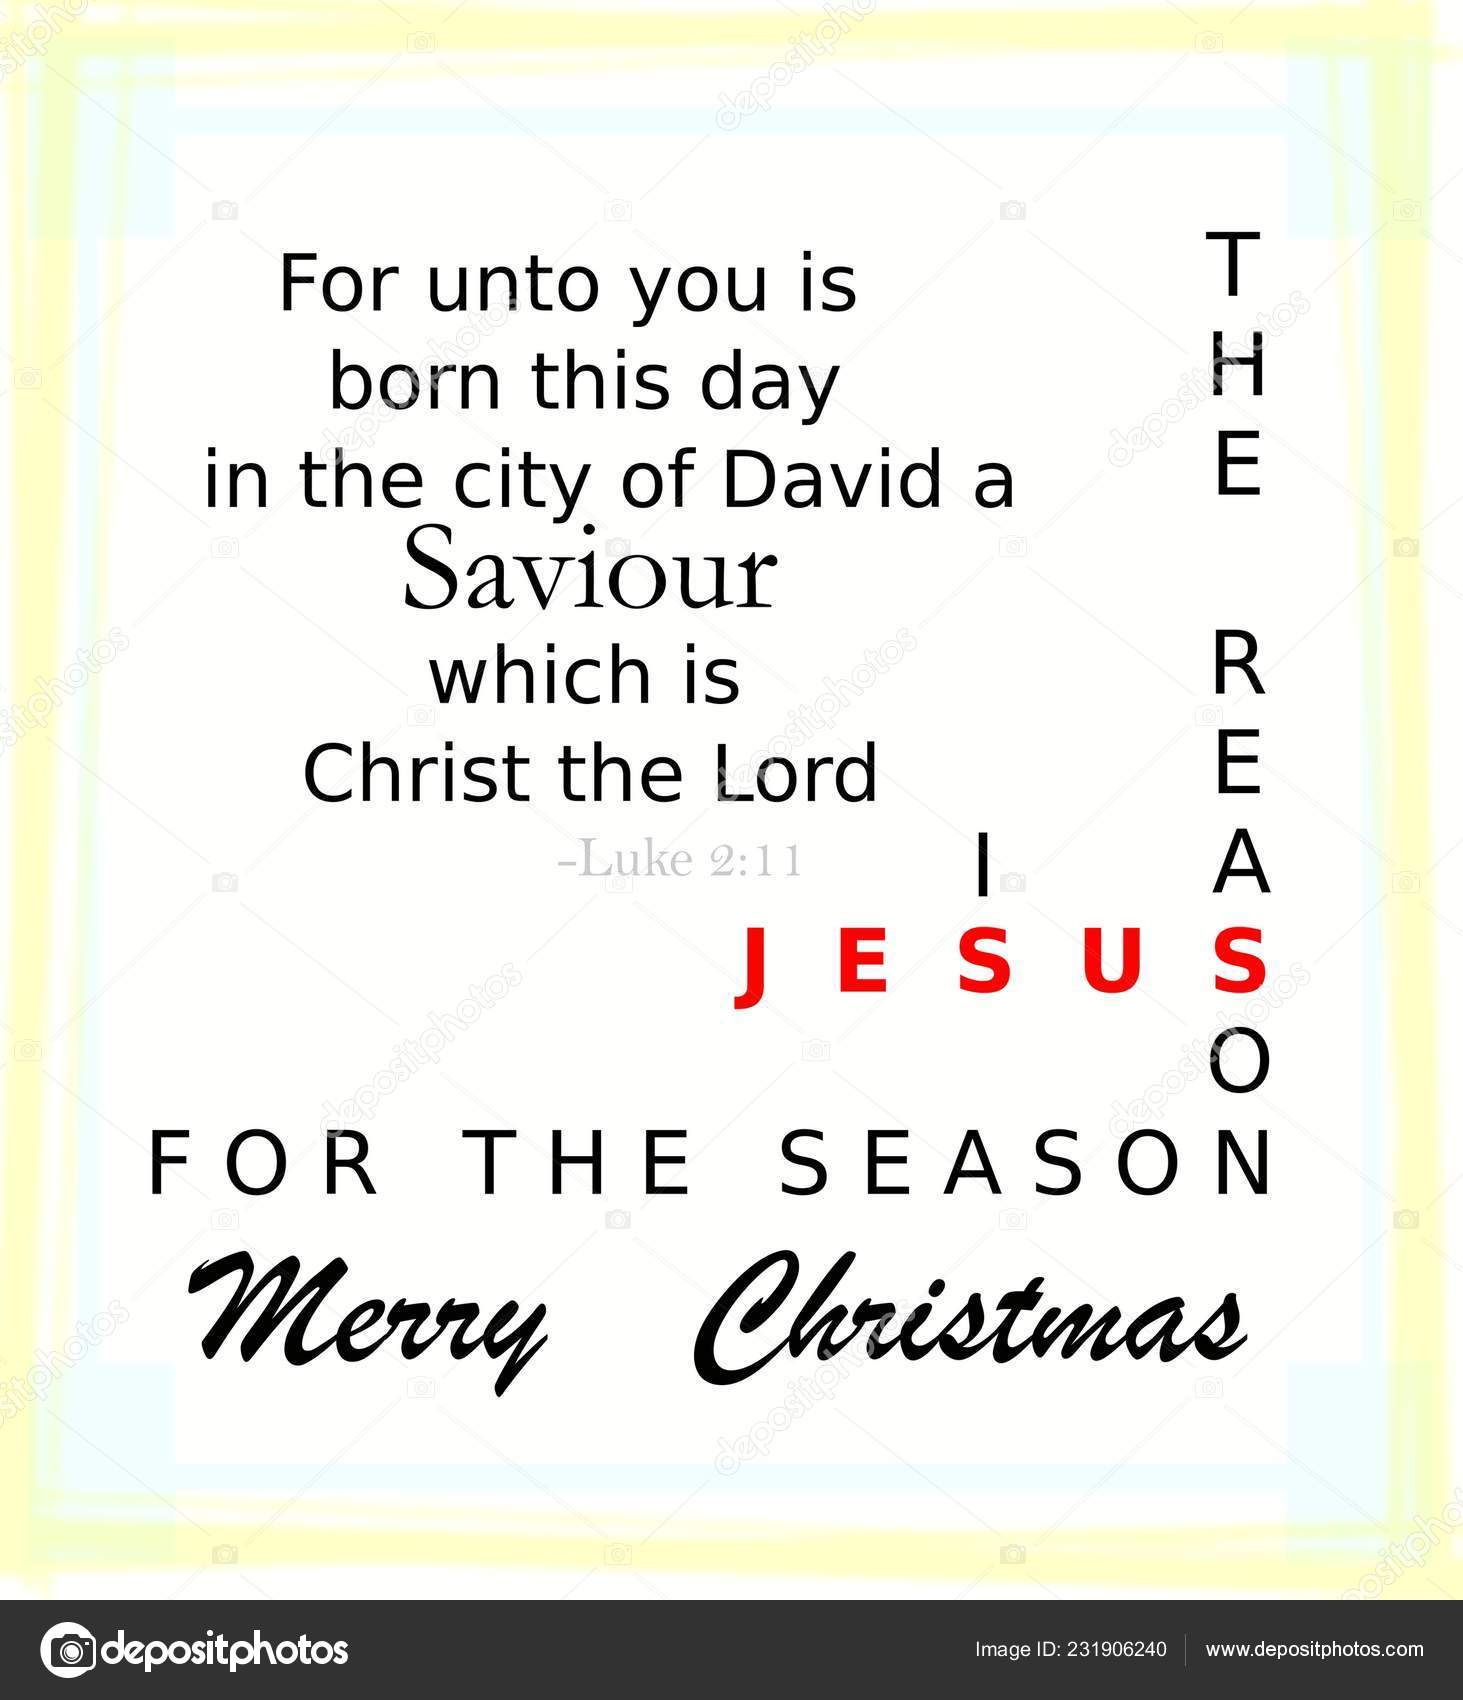 Christmas Quotes Bible.Images Jesus Is The Reason For The Season Image Jesus